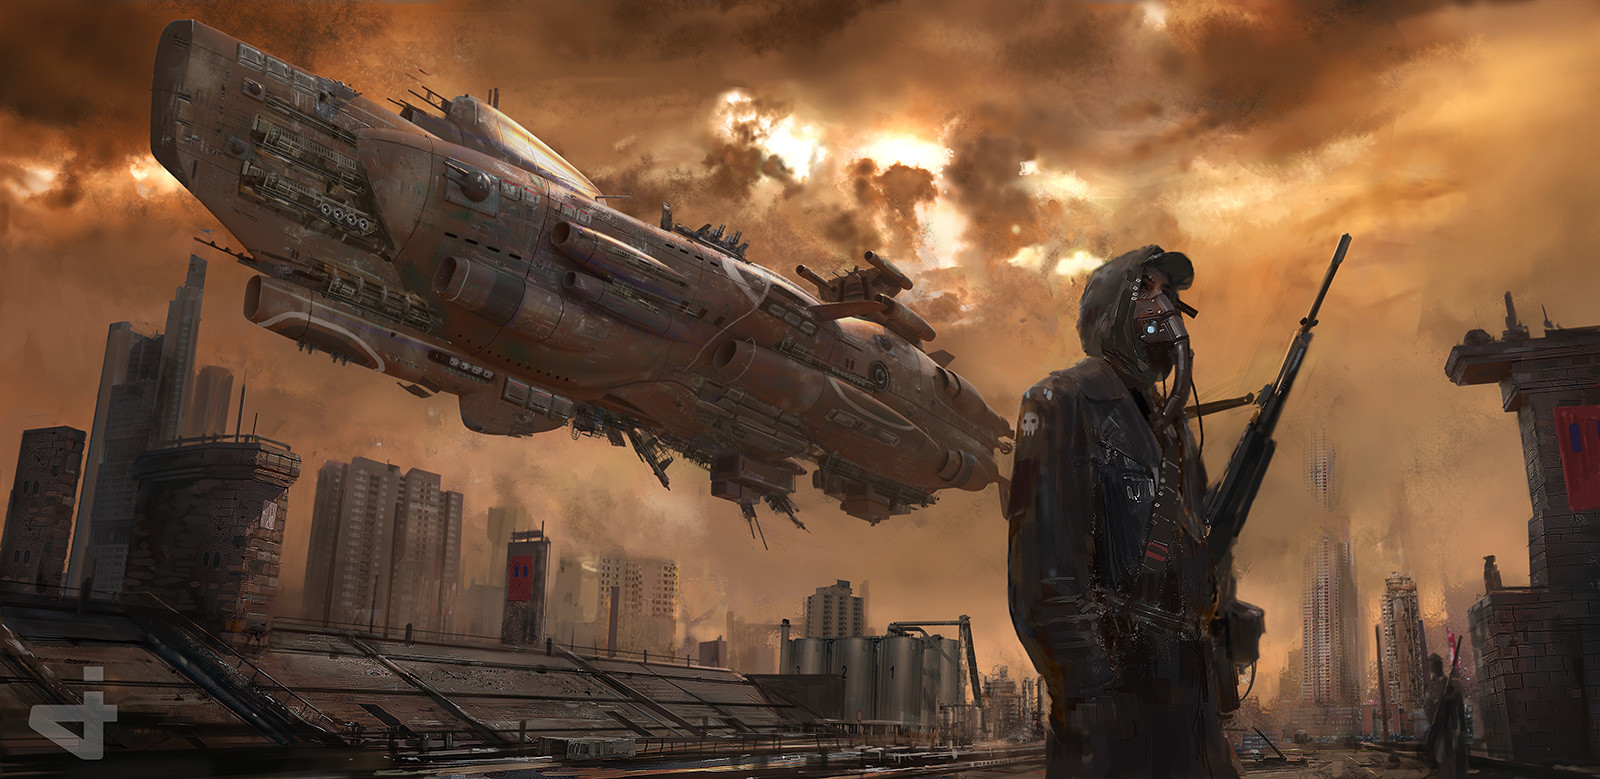 Connu The Science Fiction Art of Josef Anton | Freelance Concept Artist HD93